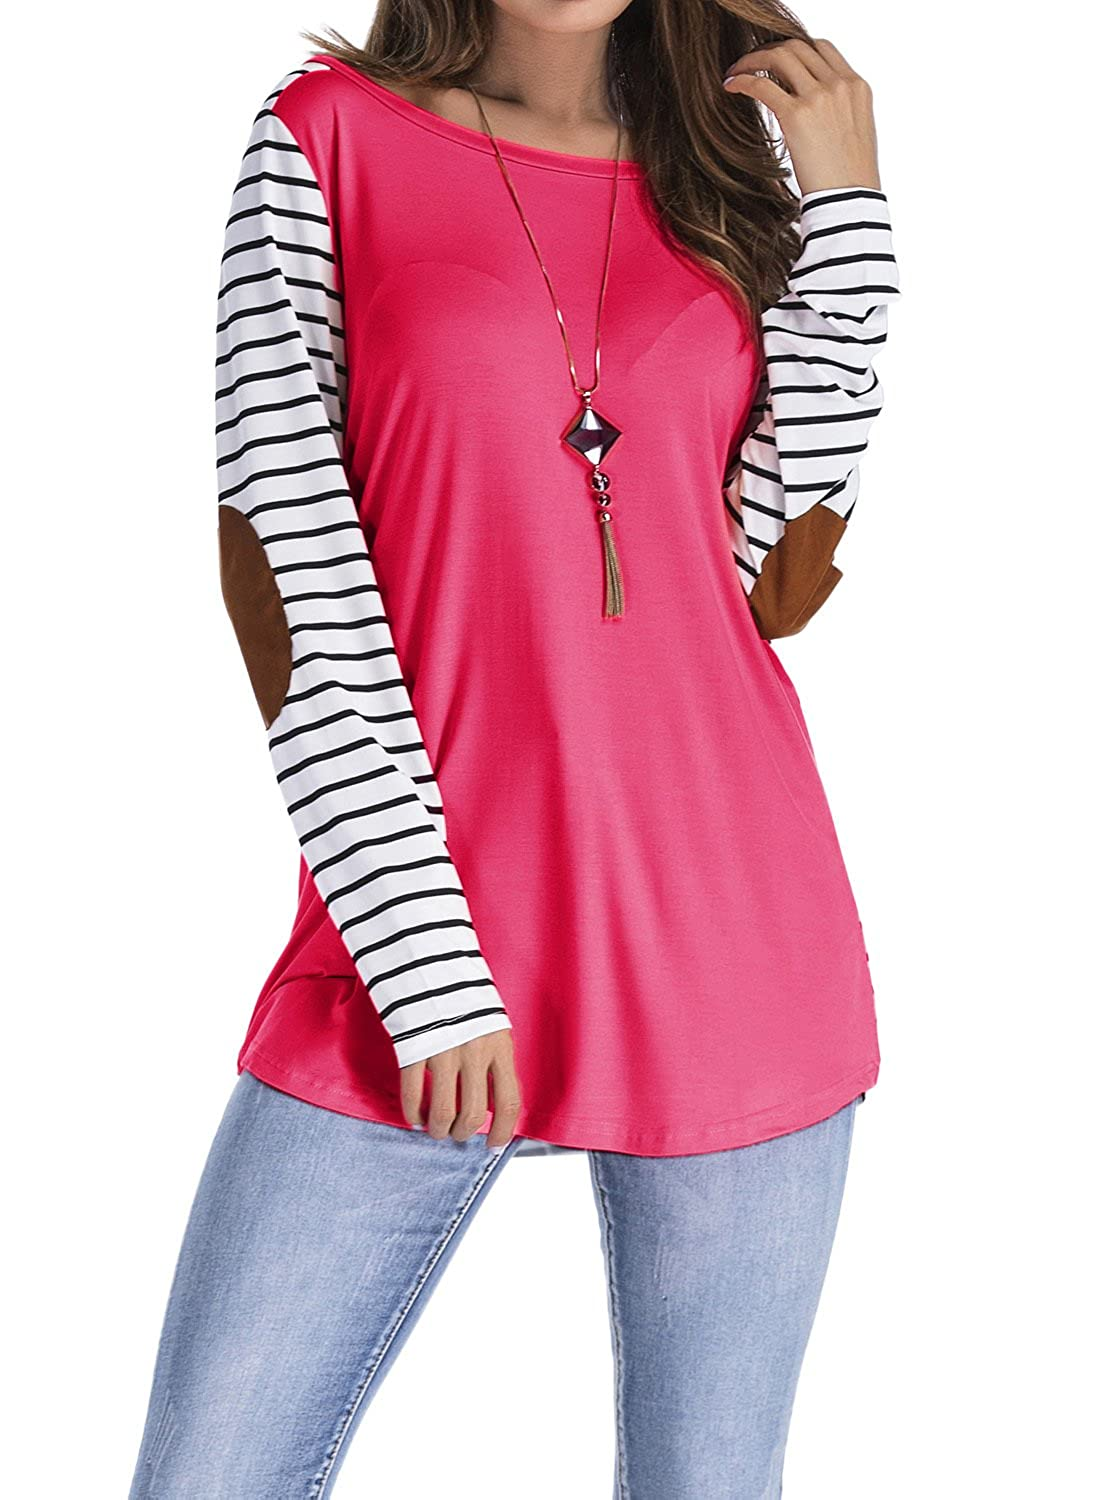 1e6b2105d11 rayon + spandex. Striped tunic tops with long sleeve. Feature Elbow details  with suede patches